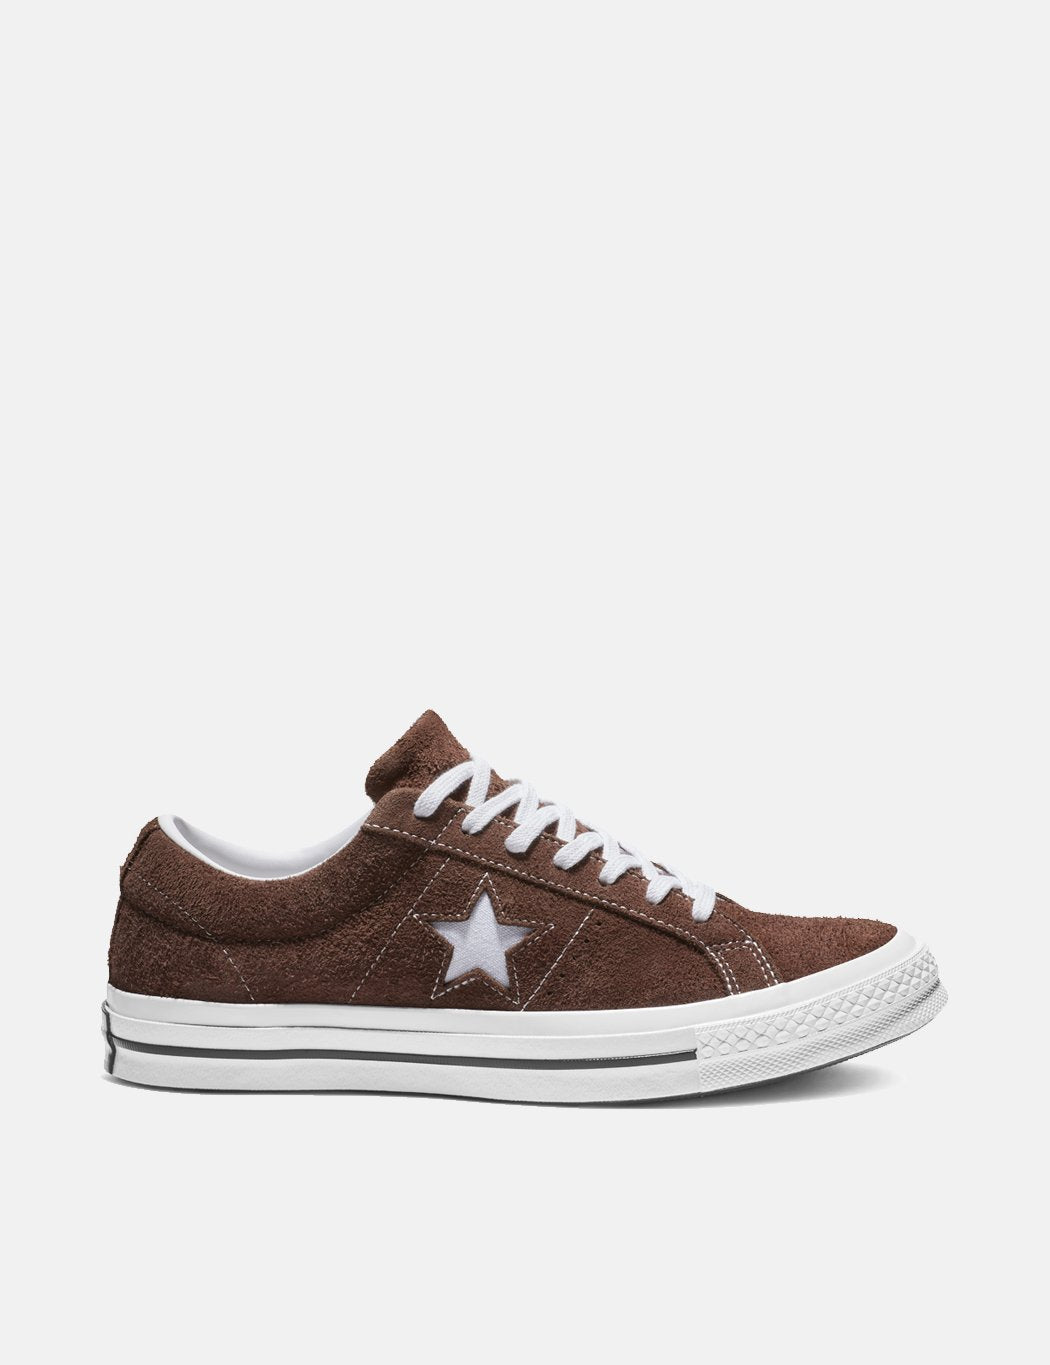 718fb4cd9425 Converse One Star Ox Low Suede (162573C) - Chocolate White